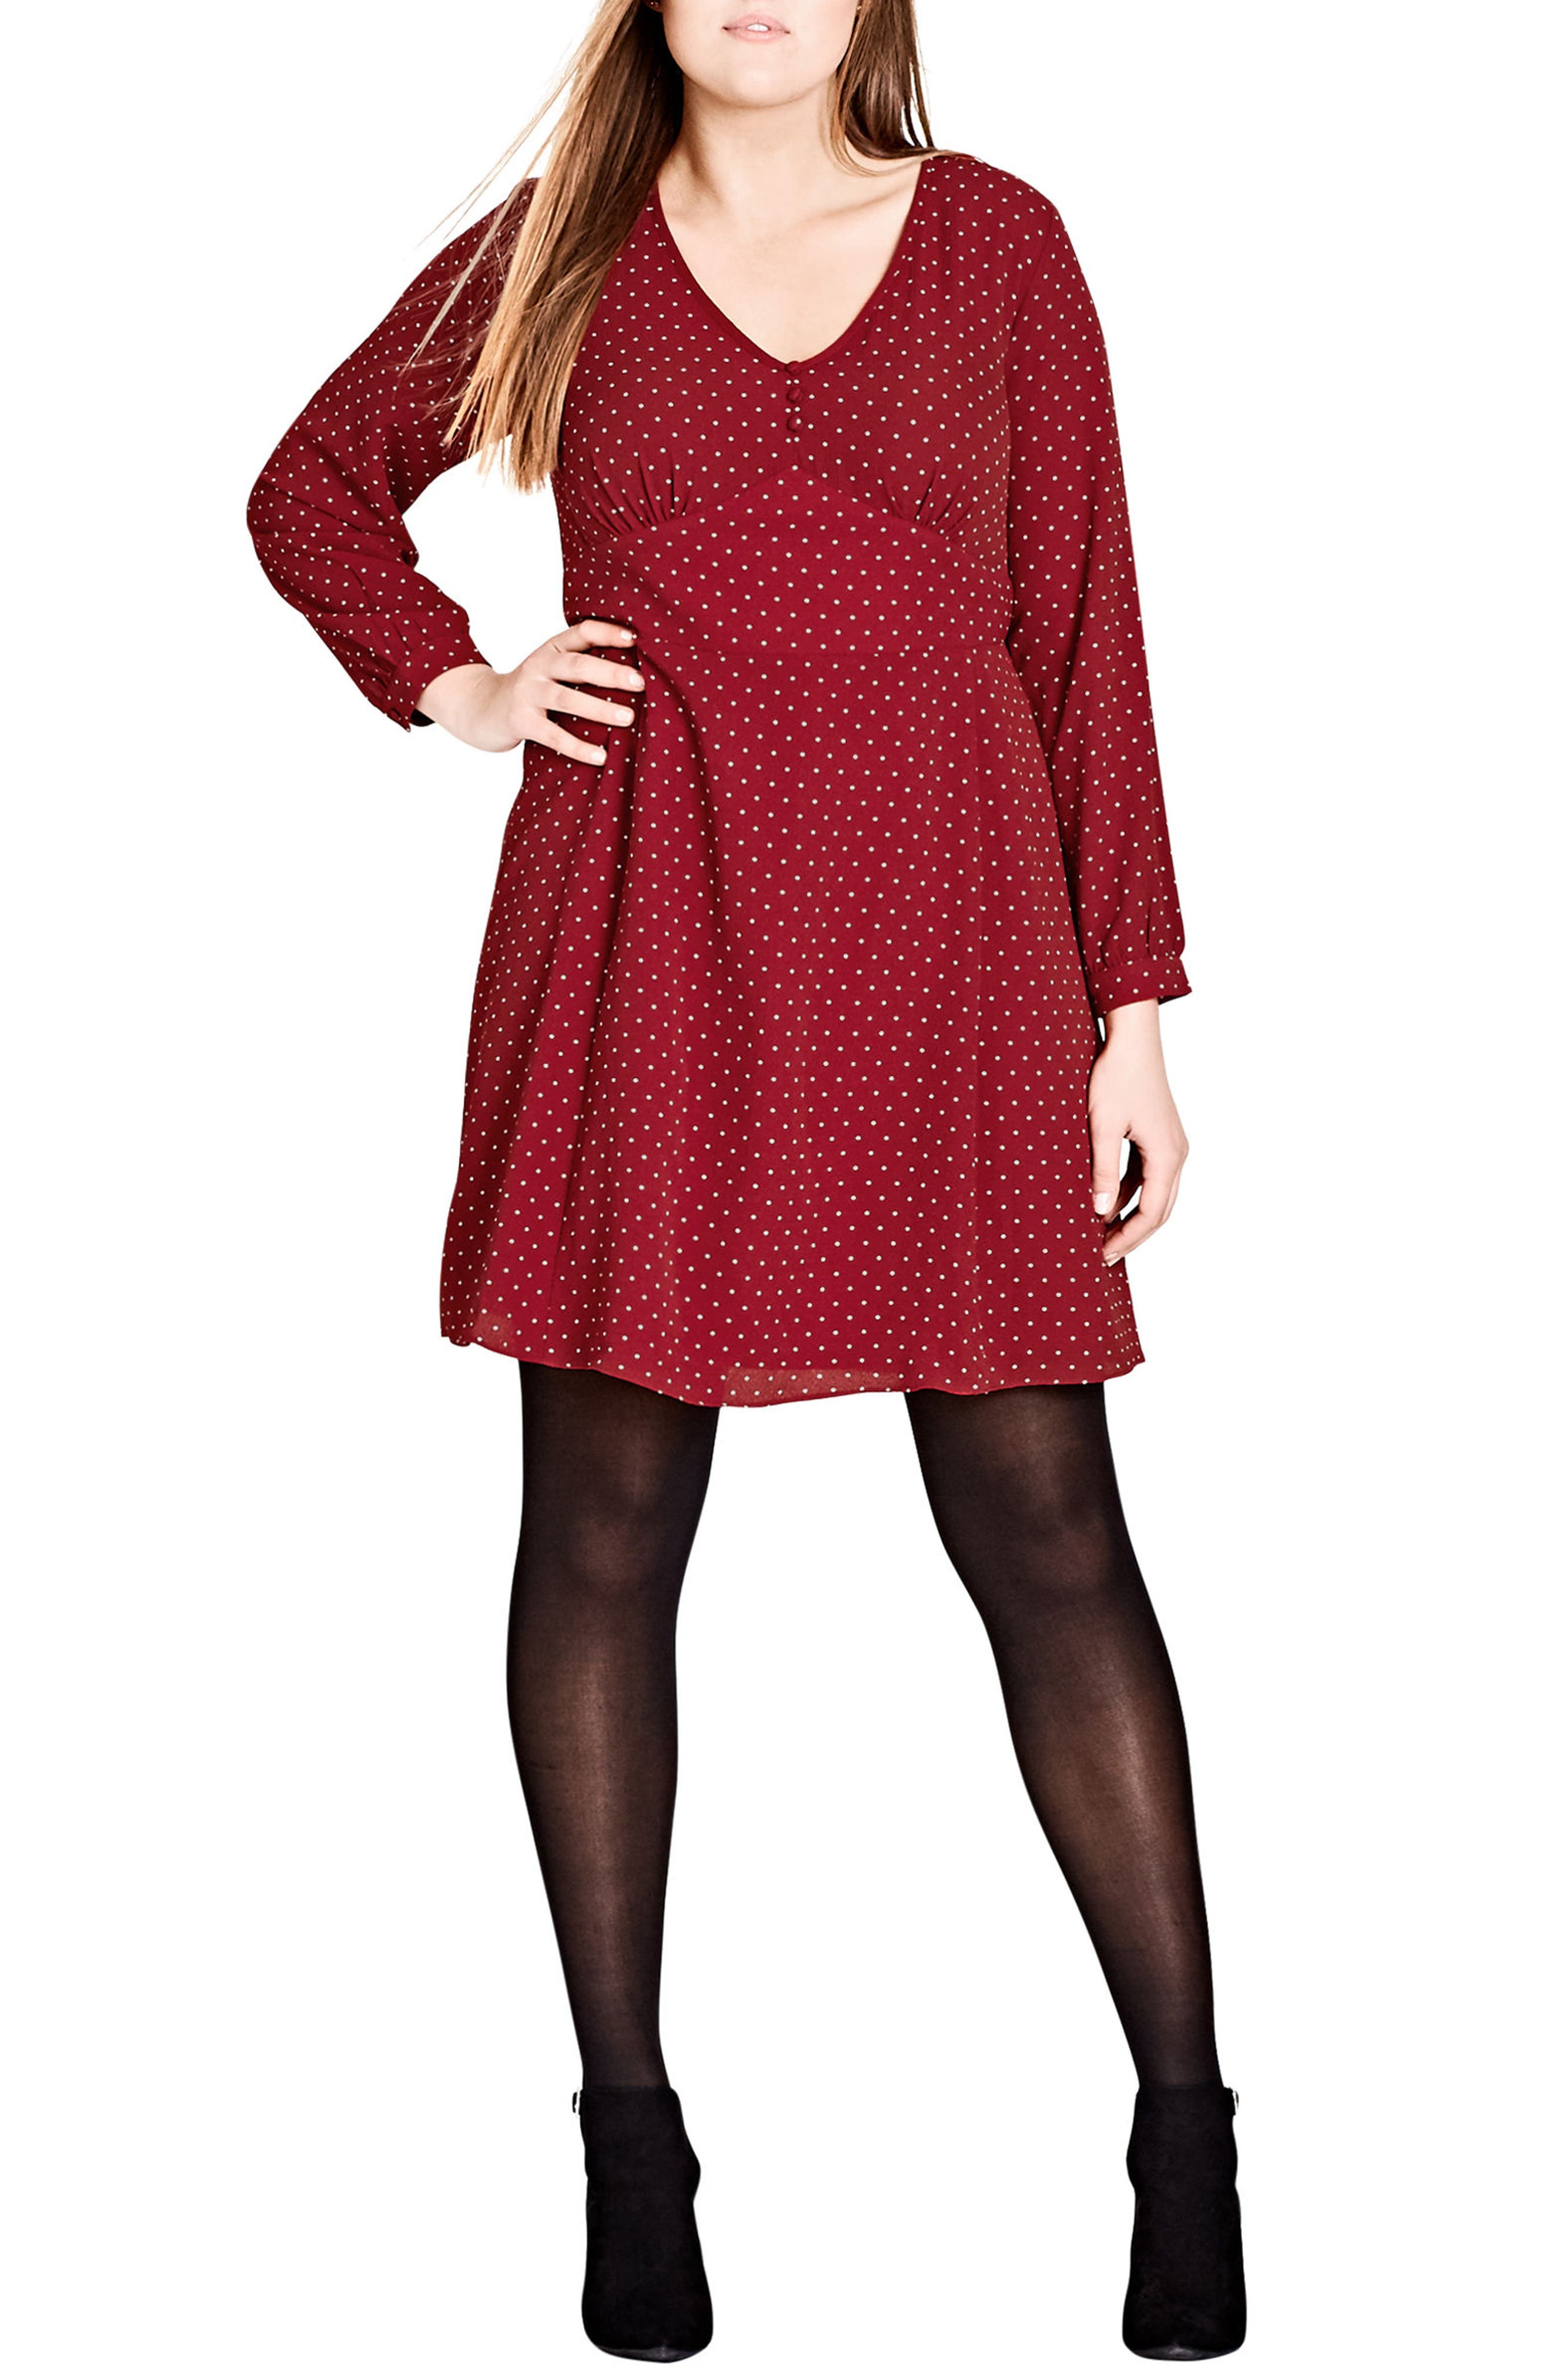 Sweet Nothing Polka Dot Dress,                         Main,                         color, Red Rose